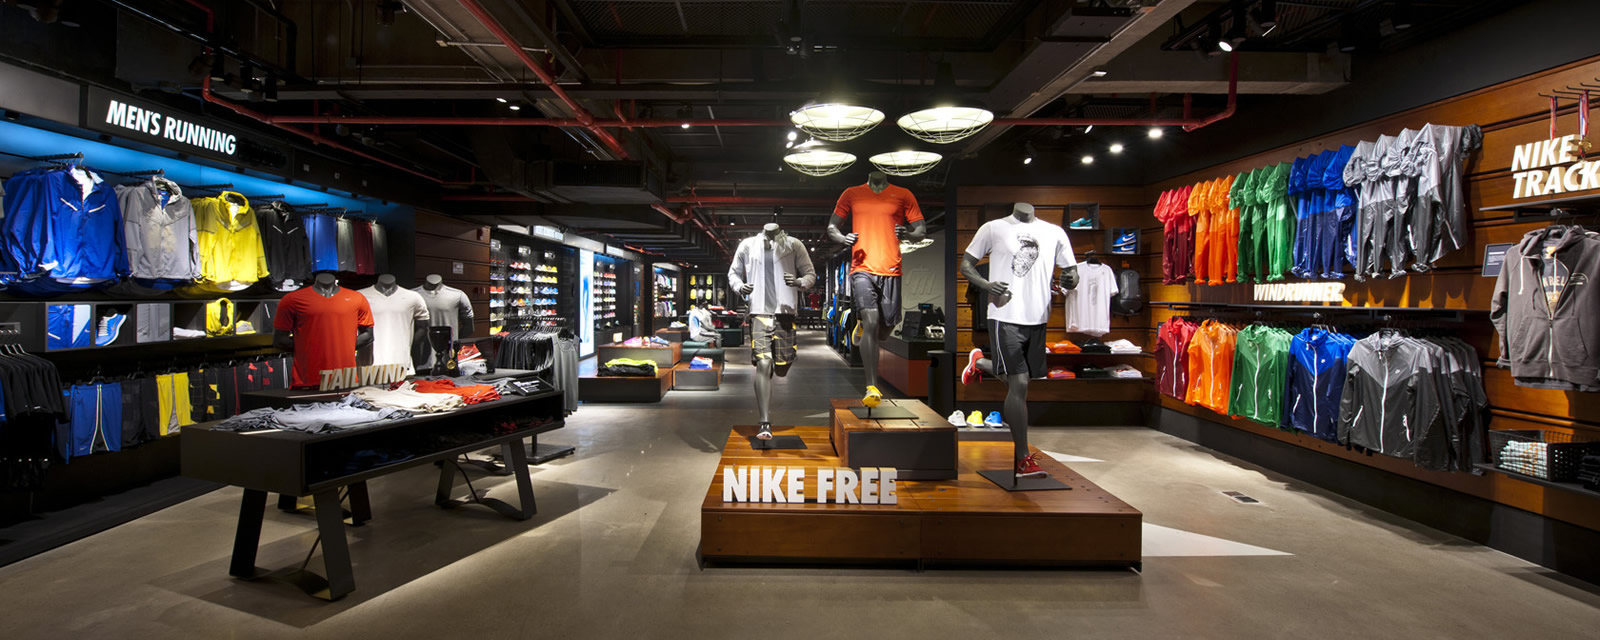 Réalisations : Nike Store Clouilly-Souilly (77)